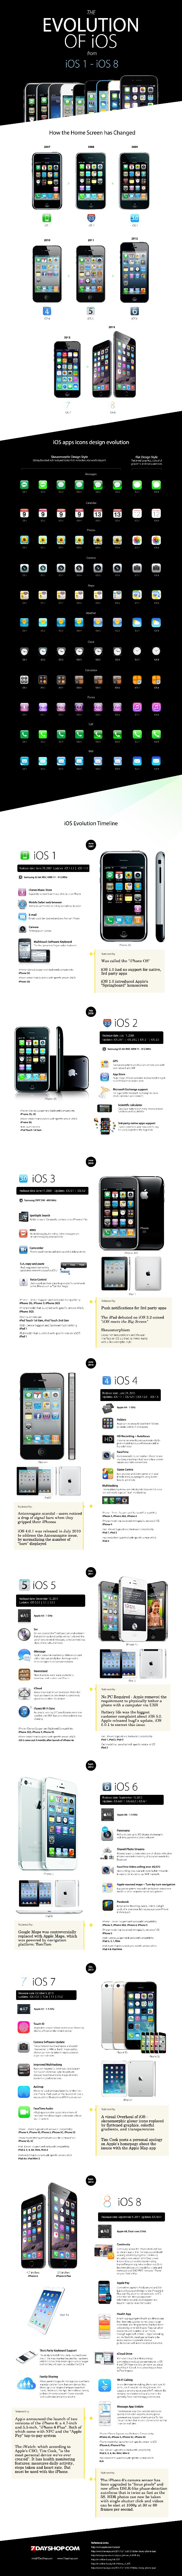 Evolution of iPhone Apps